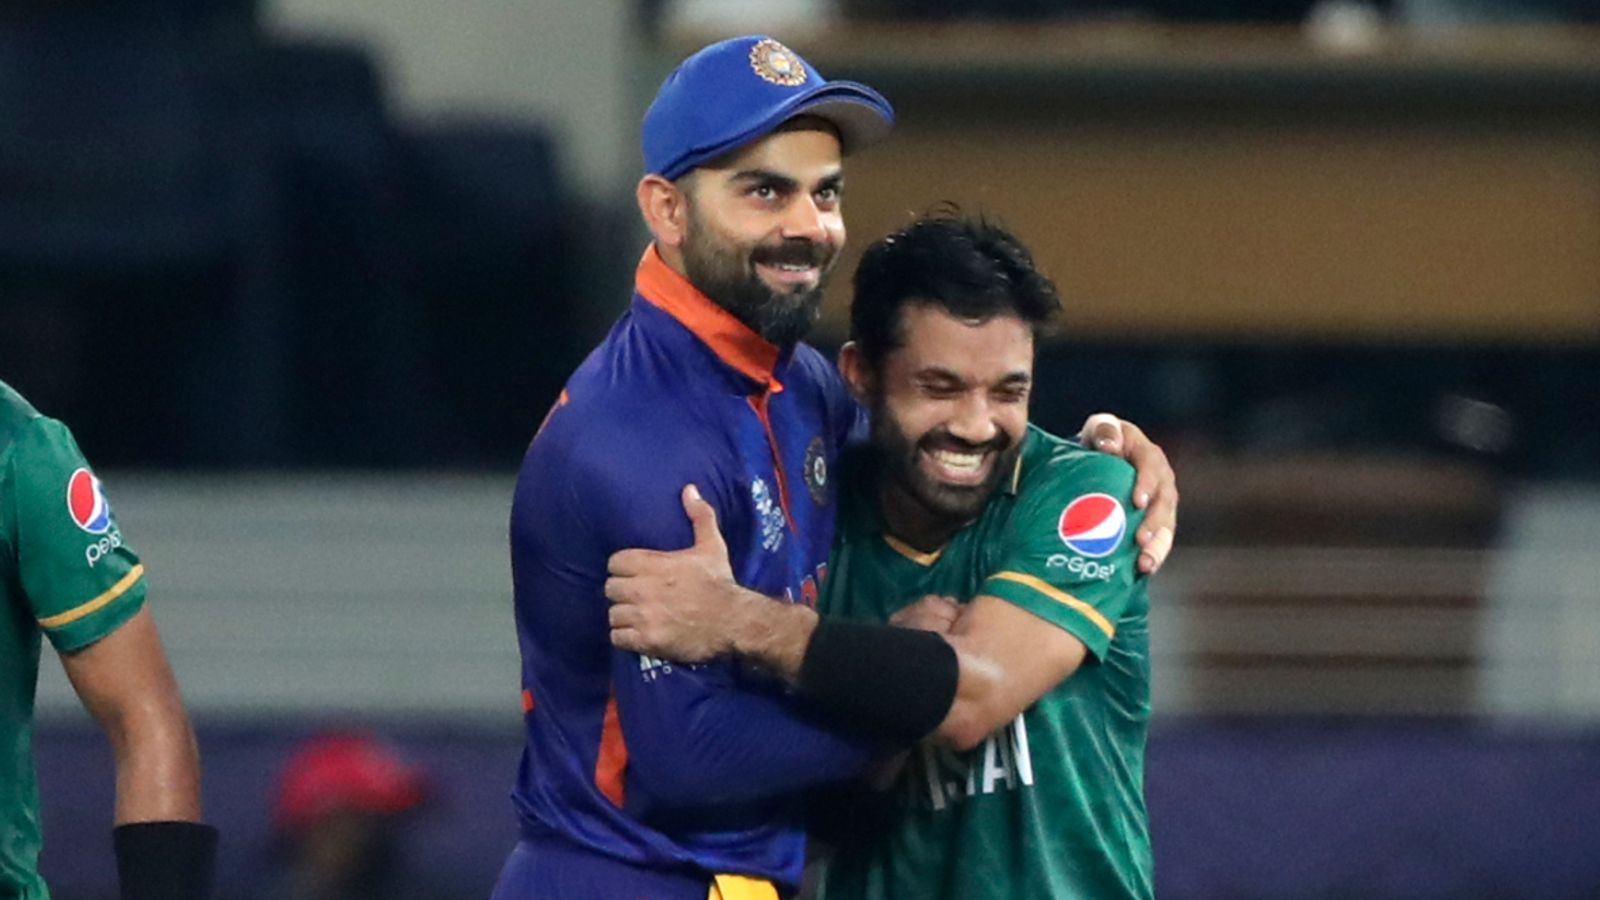 Virat Kohli gives credit to Pakistan after India slump to heavy T20 World Cup defeat but refuses to panic